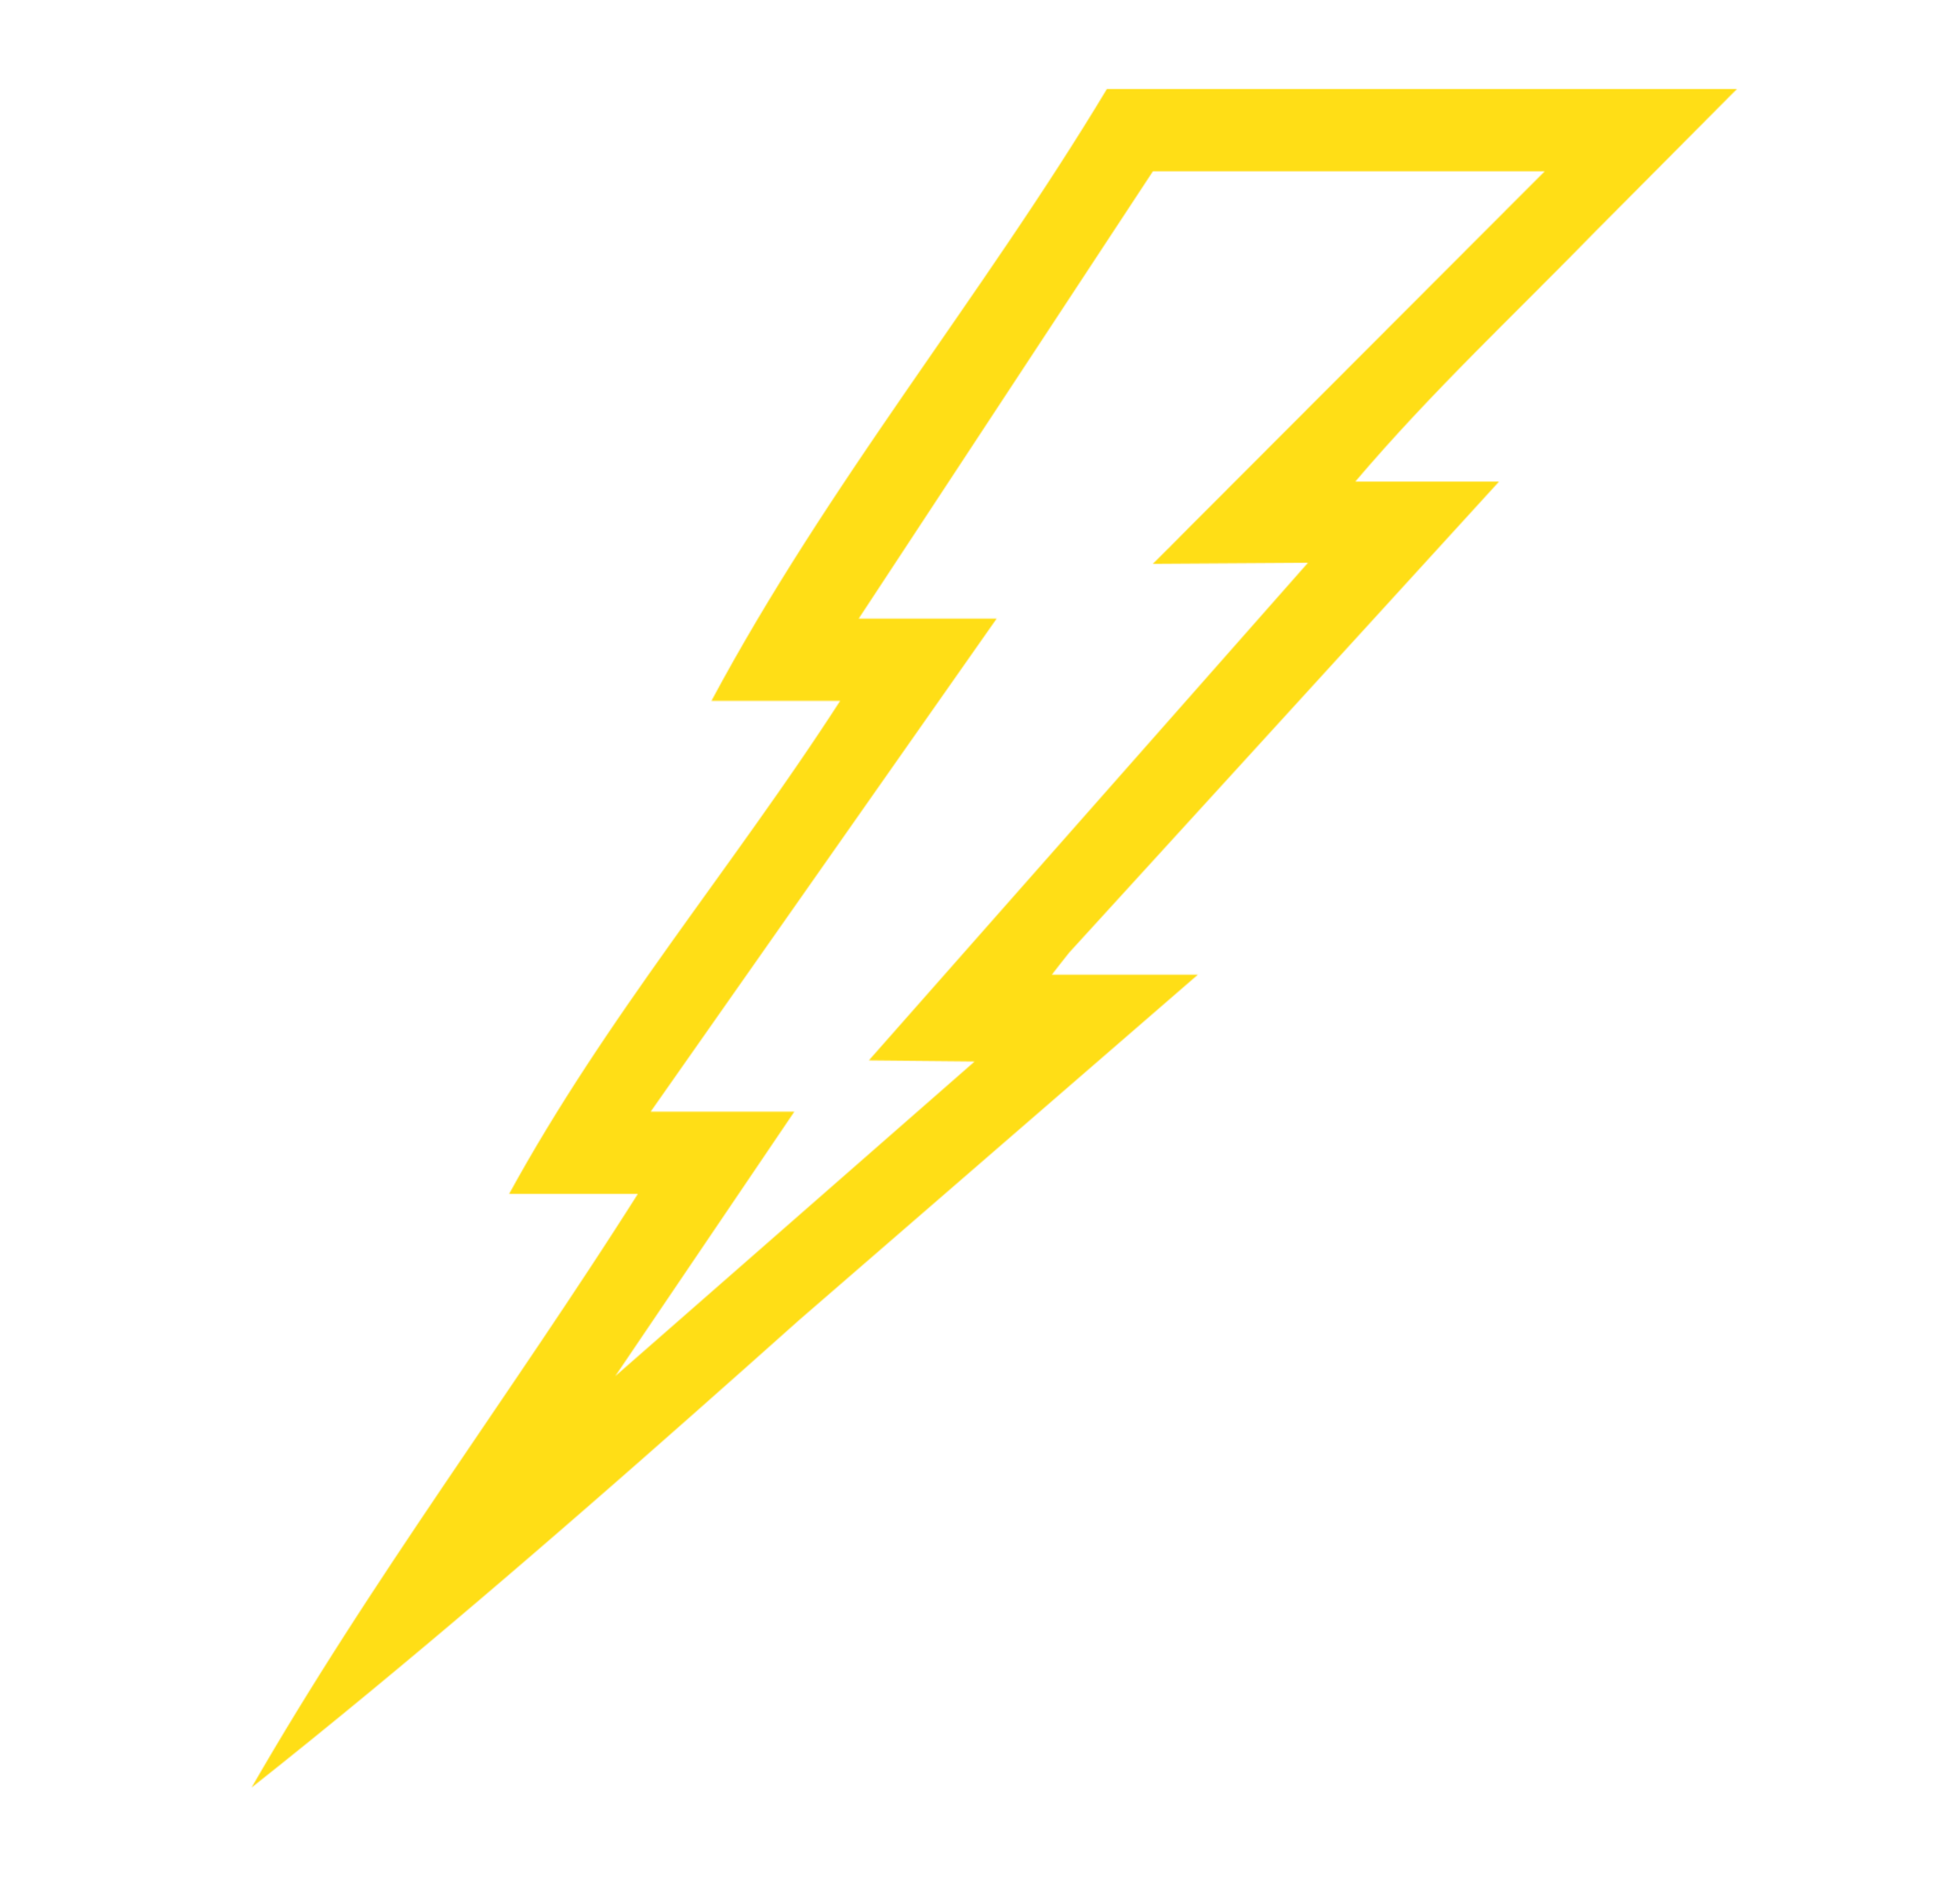 Yellow lightning clipart clipart black and white download Free Lightning Bolt, Download Free Clip Art, Free Clip Art on ... clipart black and white download